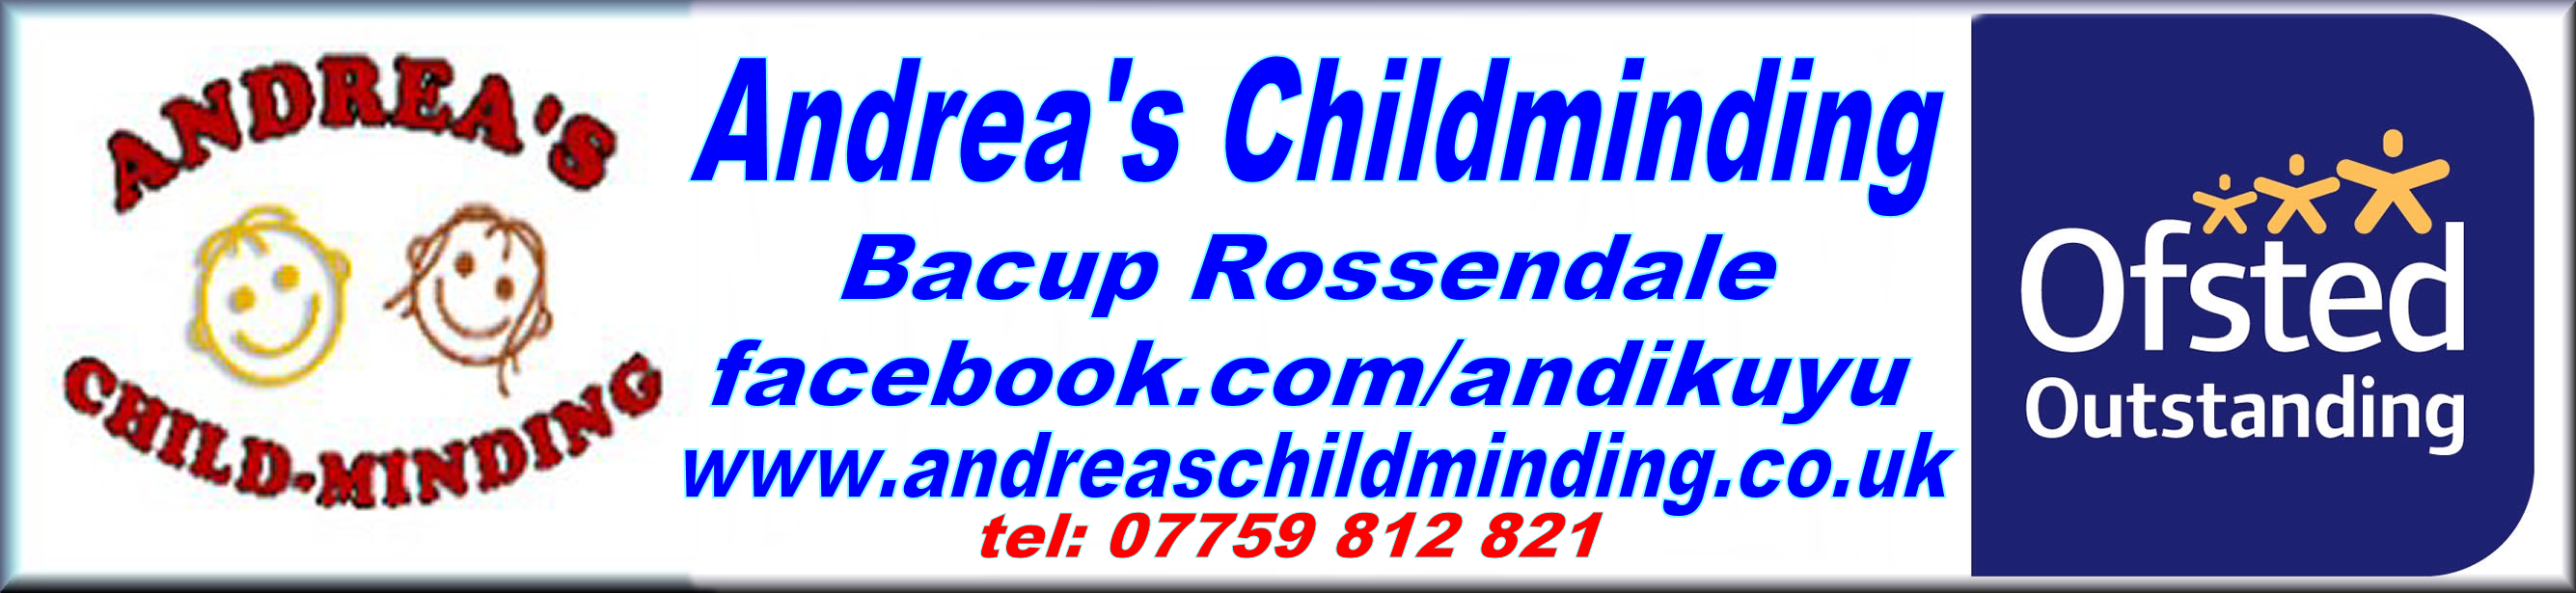 Andreas Child Minding Bacup